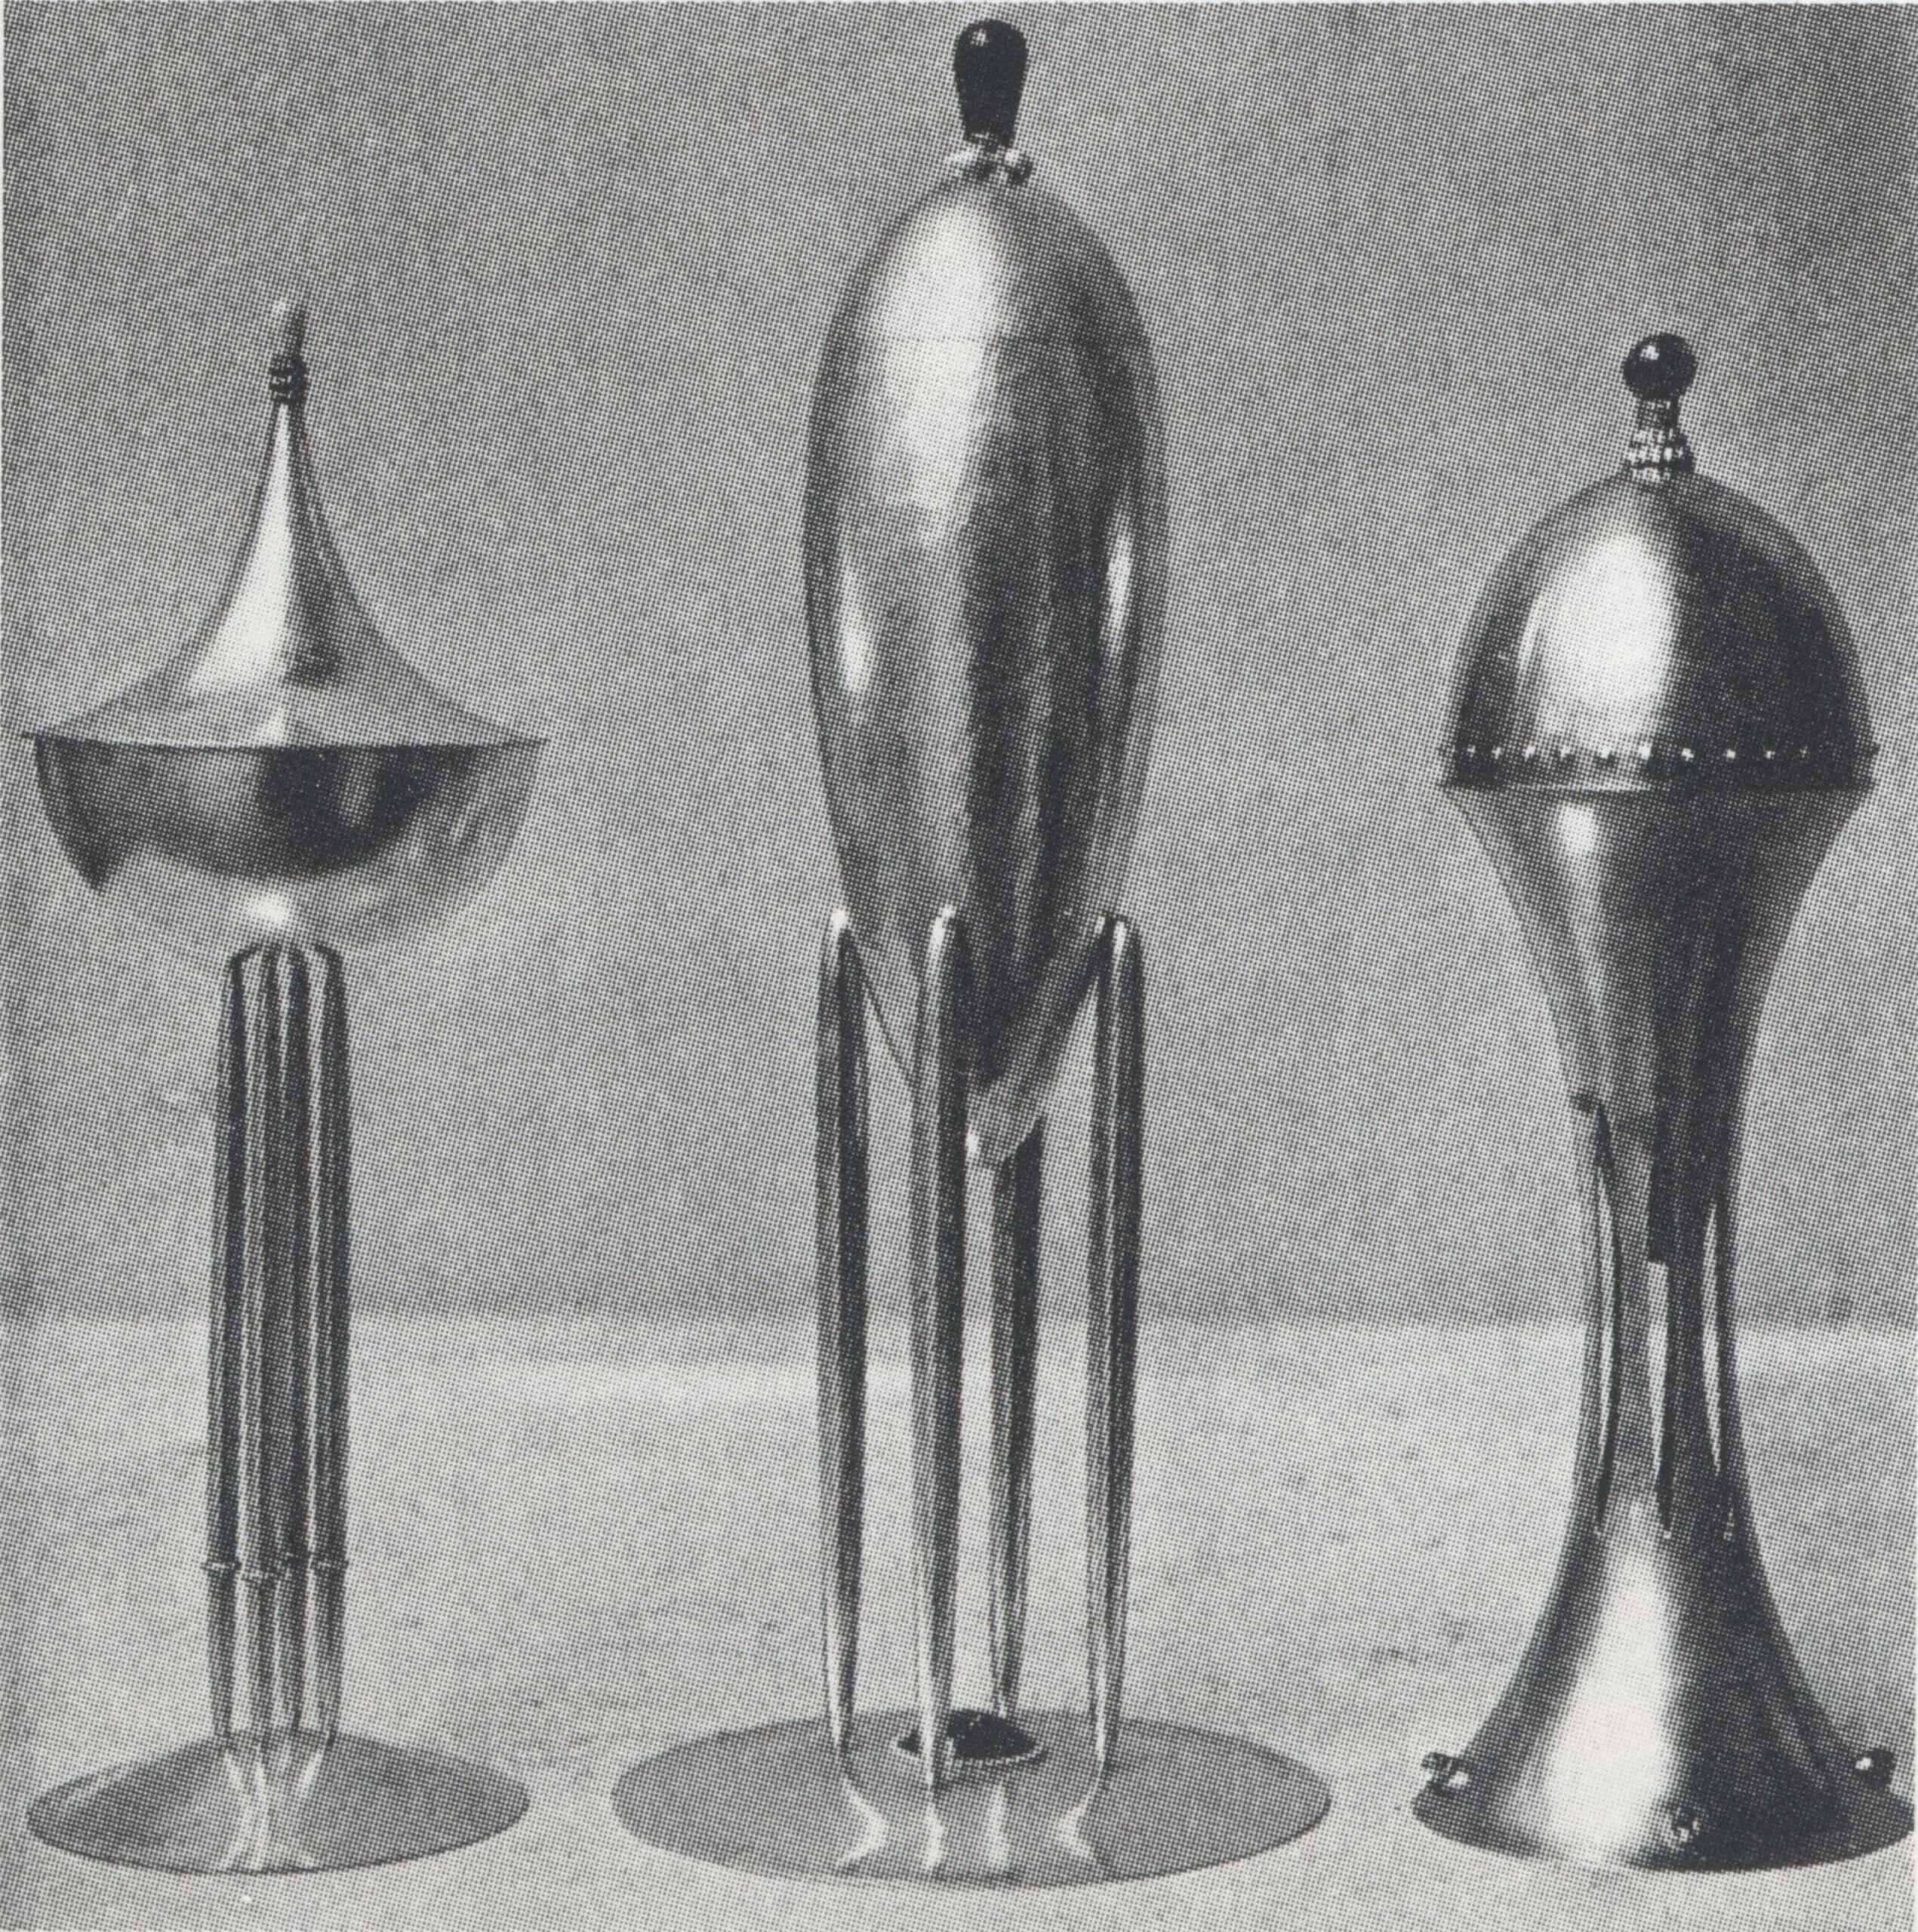 Similar pieces executed by Alexander Sturm and Company